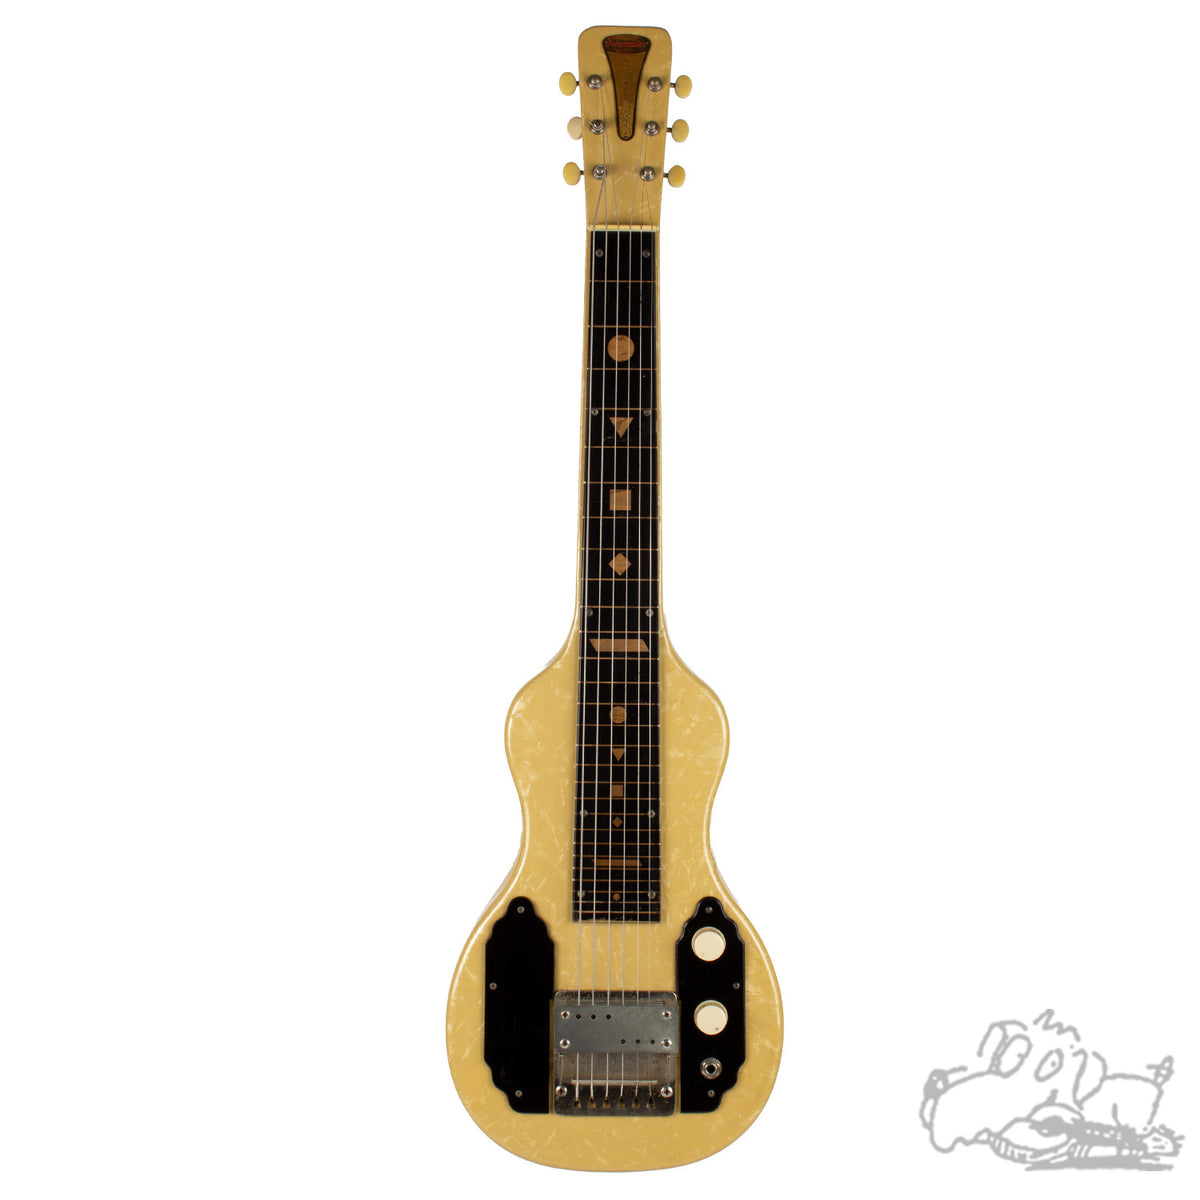 1958 English Tonemaster Lap Steel Guitar